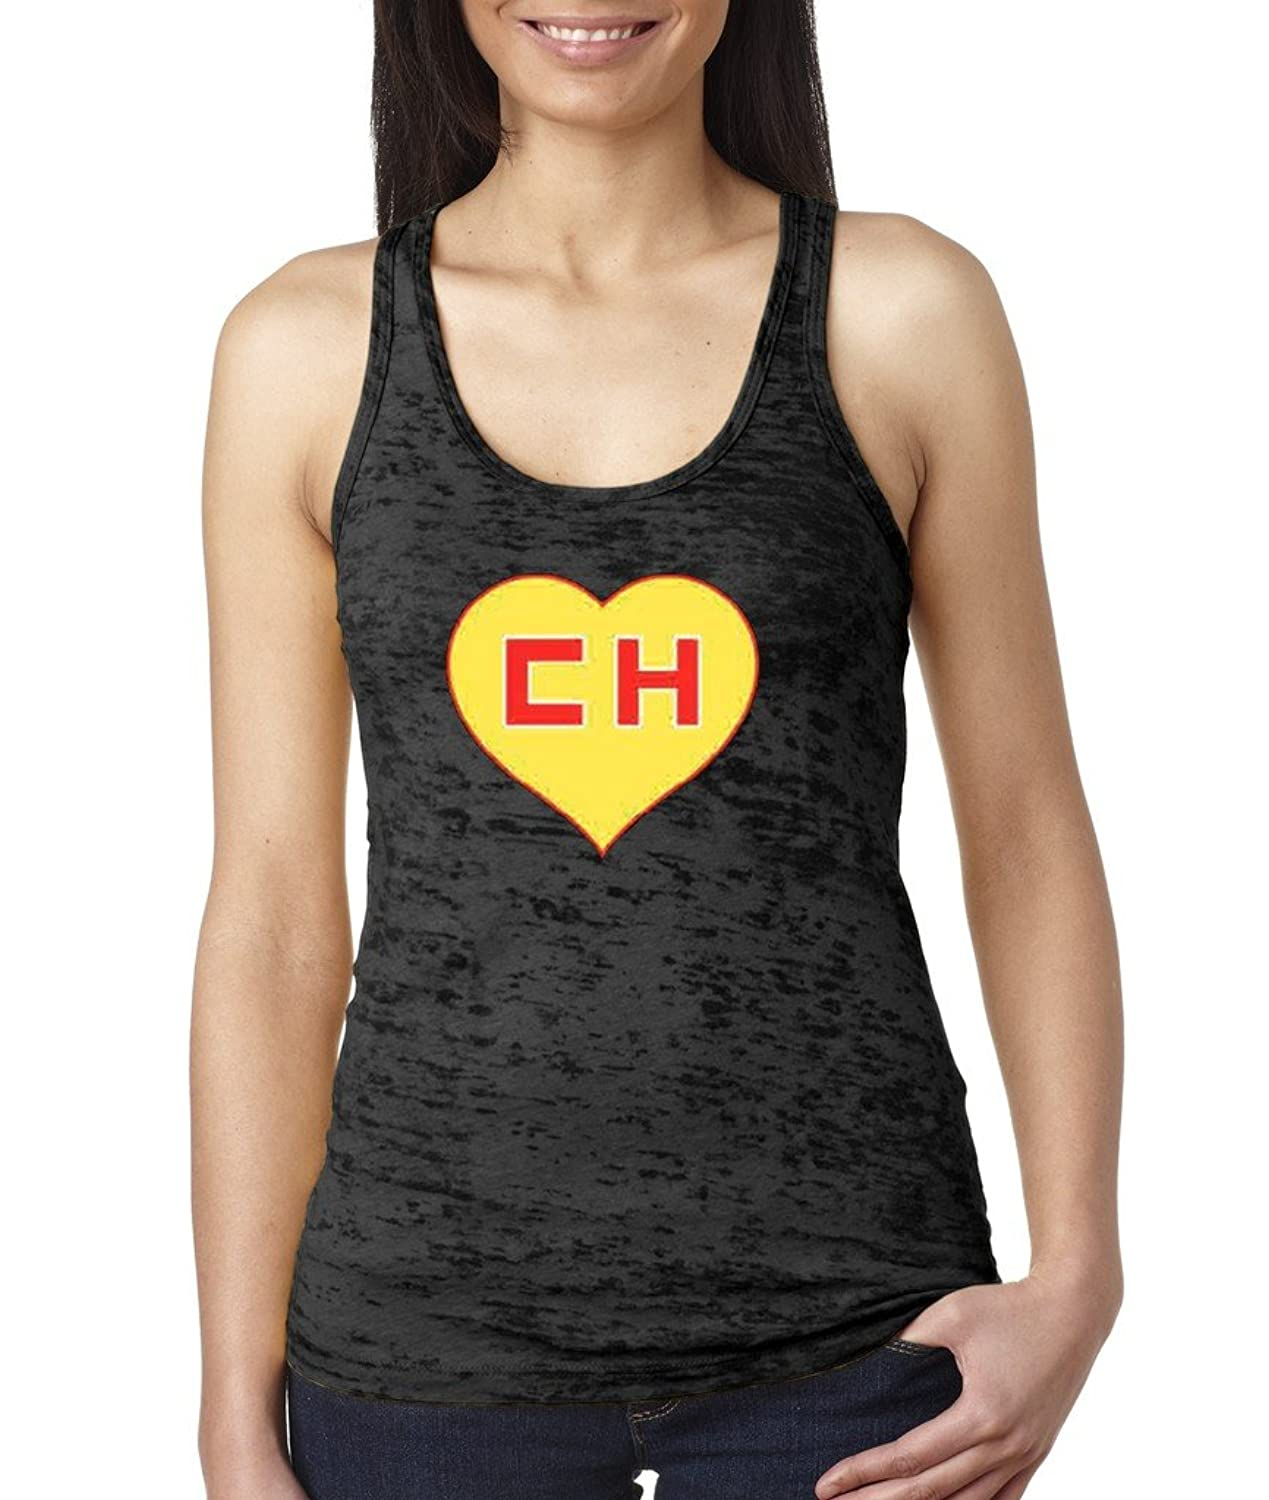 El Chapulin Colorado El Chavo Burnout Tank Chespirito Racerback Black 1064